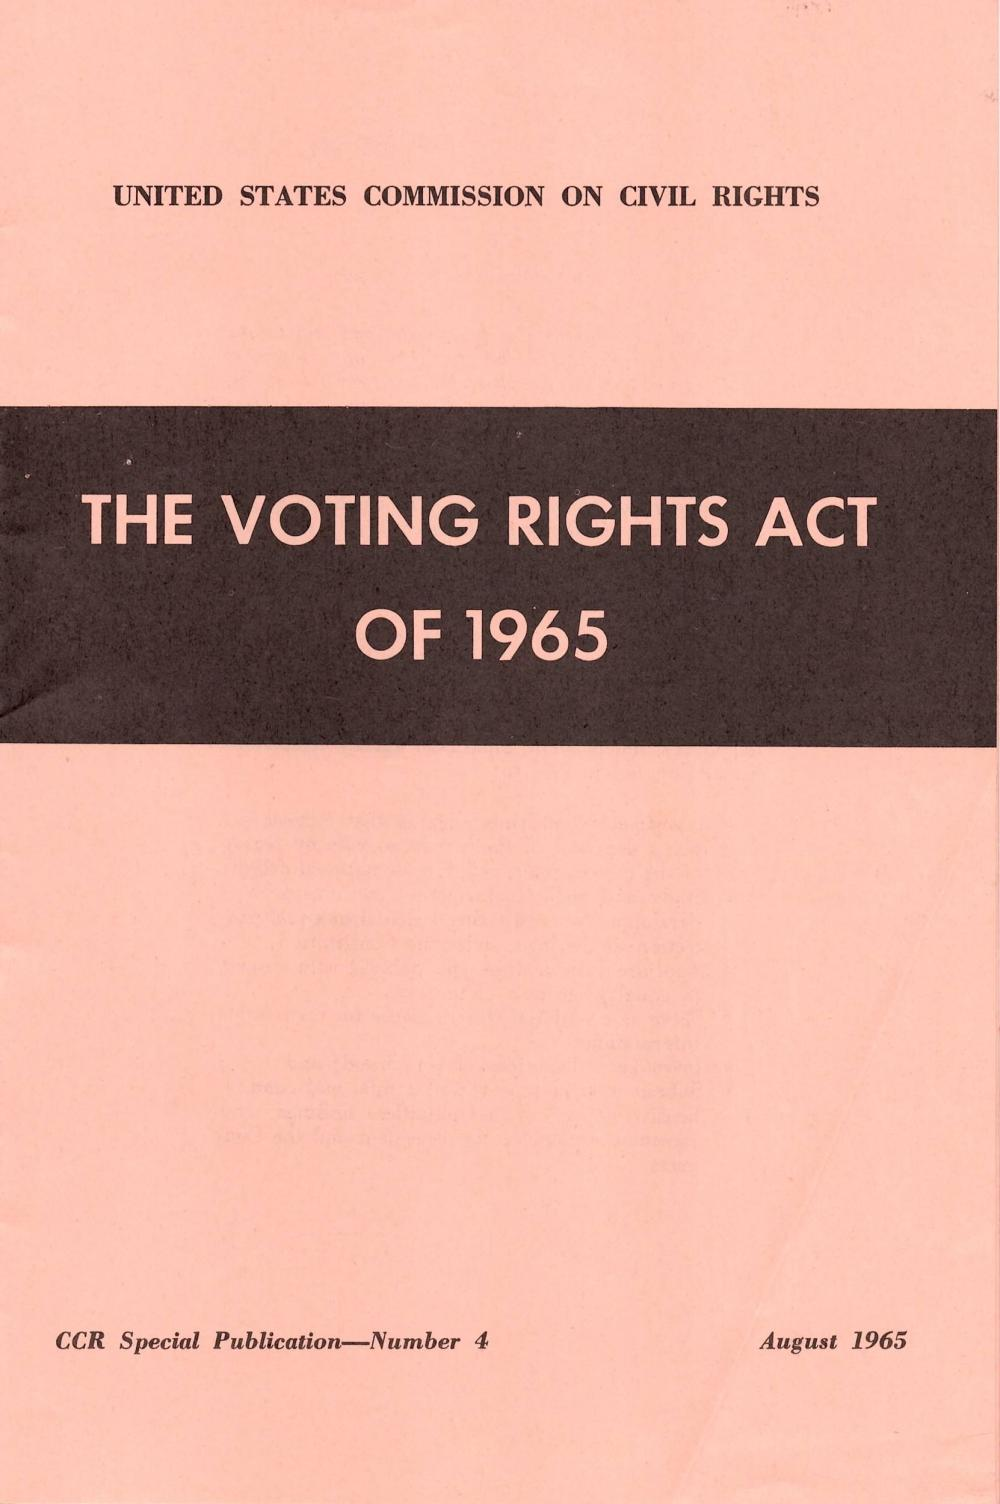 1965 Voting Rights Archive -- Rare